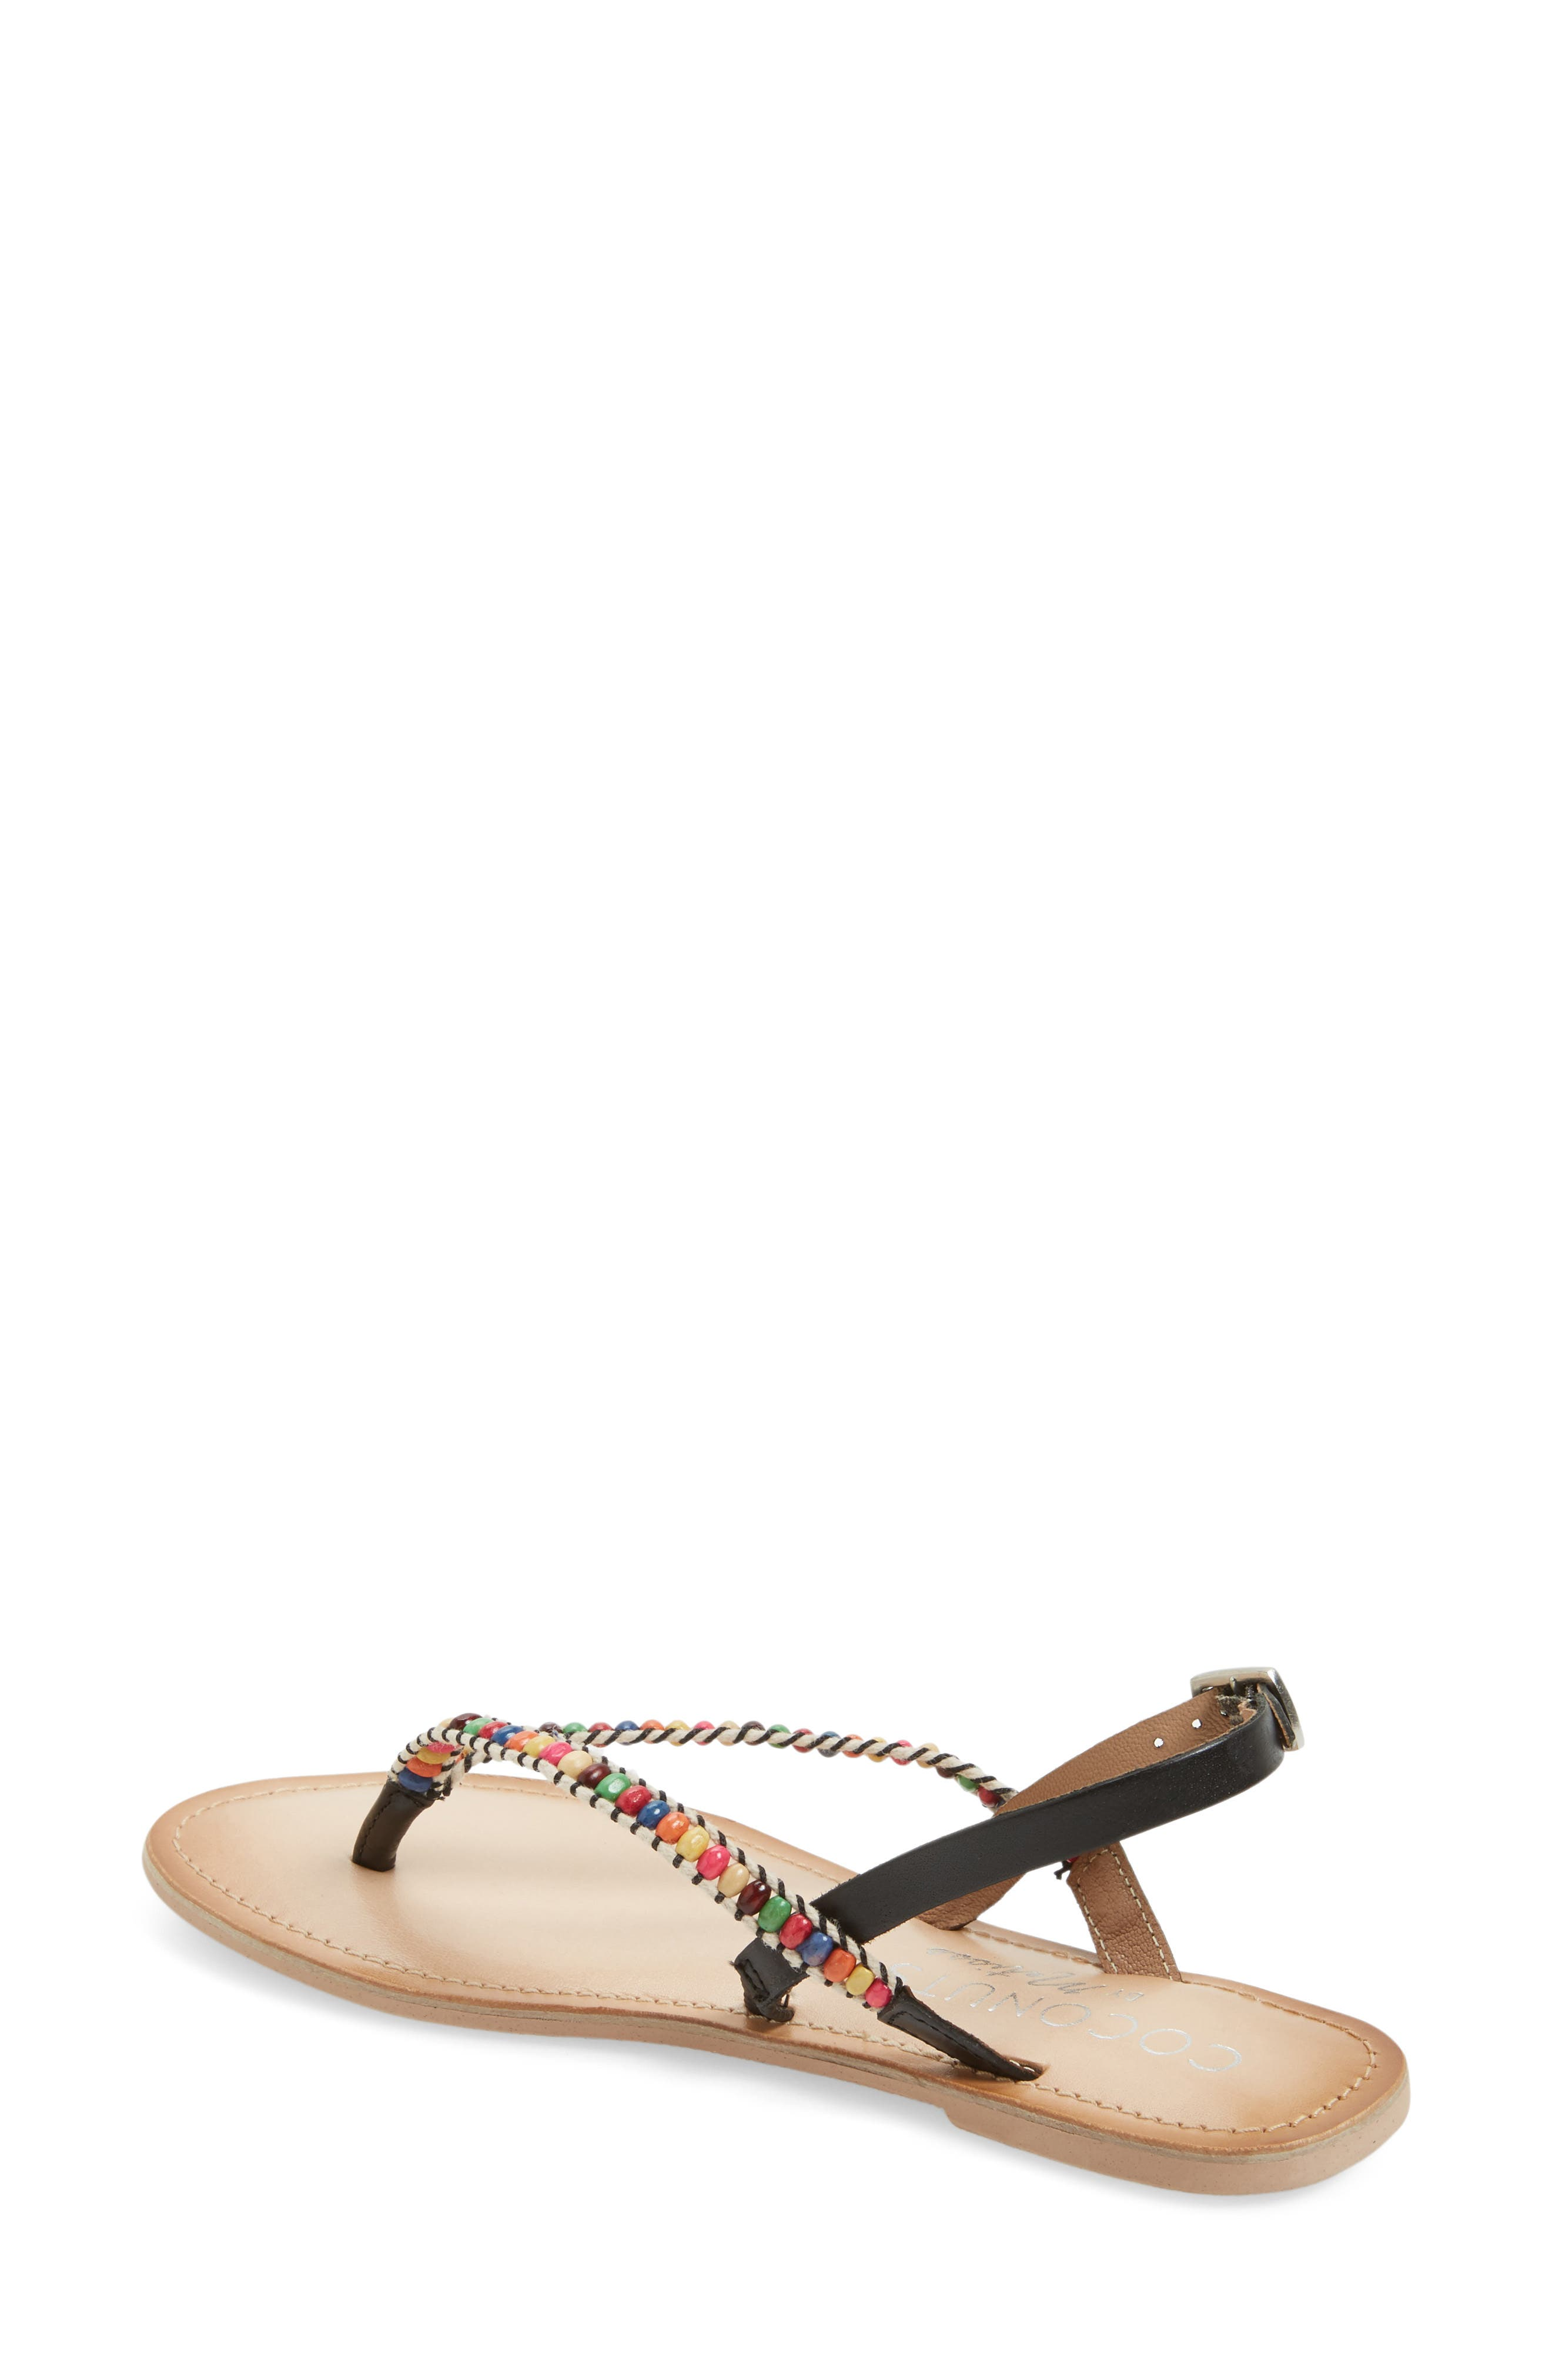 Coconuts by Matisse Celebration Beaded Sandal,                             Alternate thumbnail 3, color,